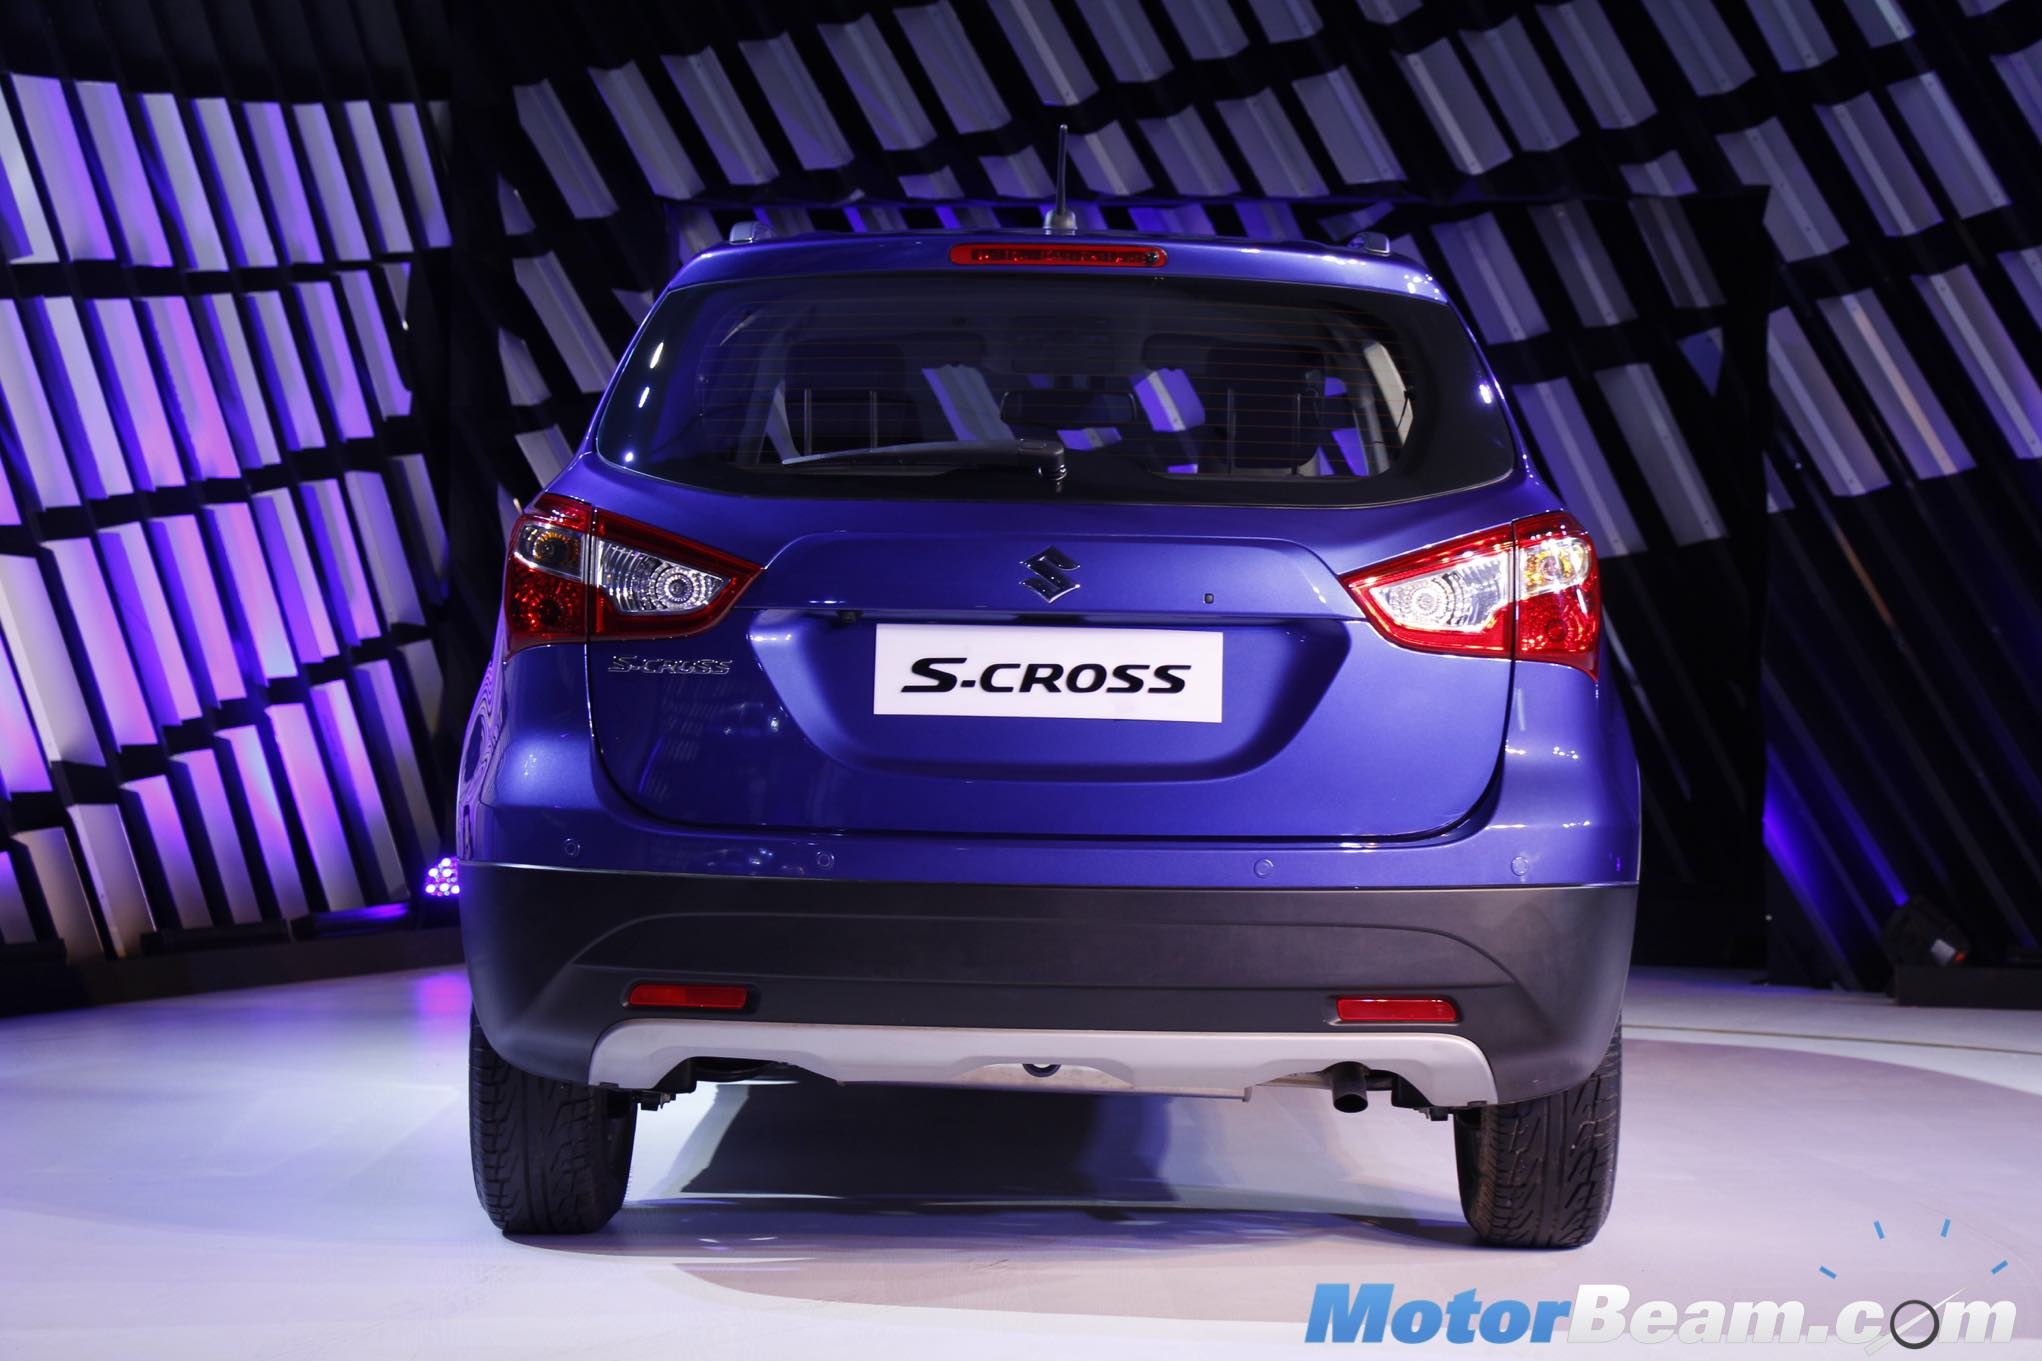 Maruti S-Cross Rear